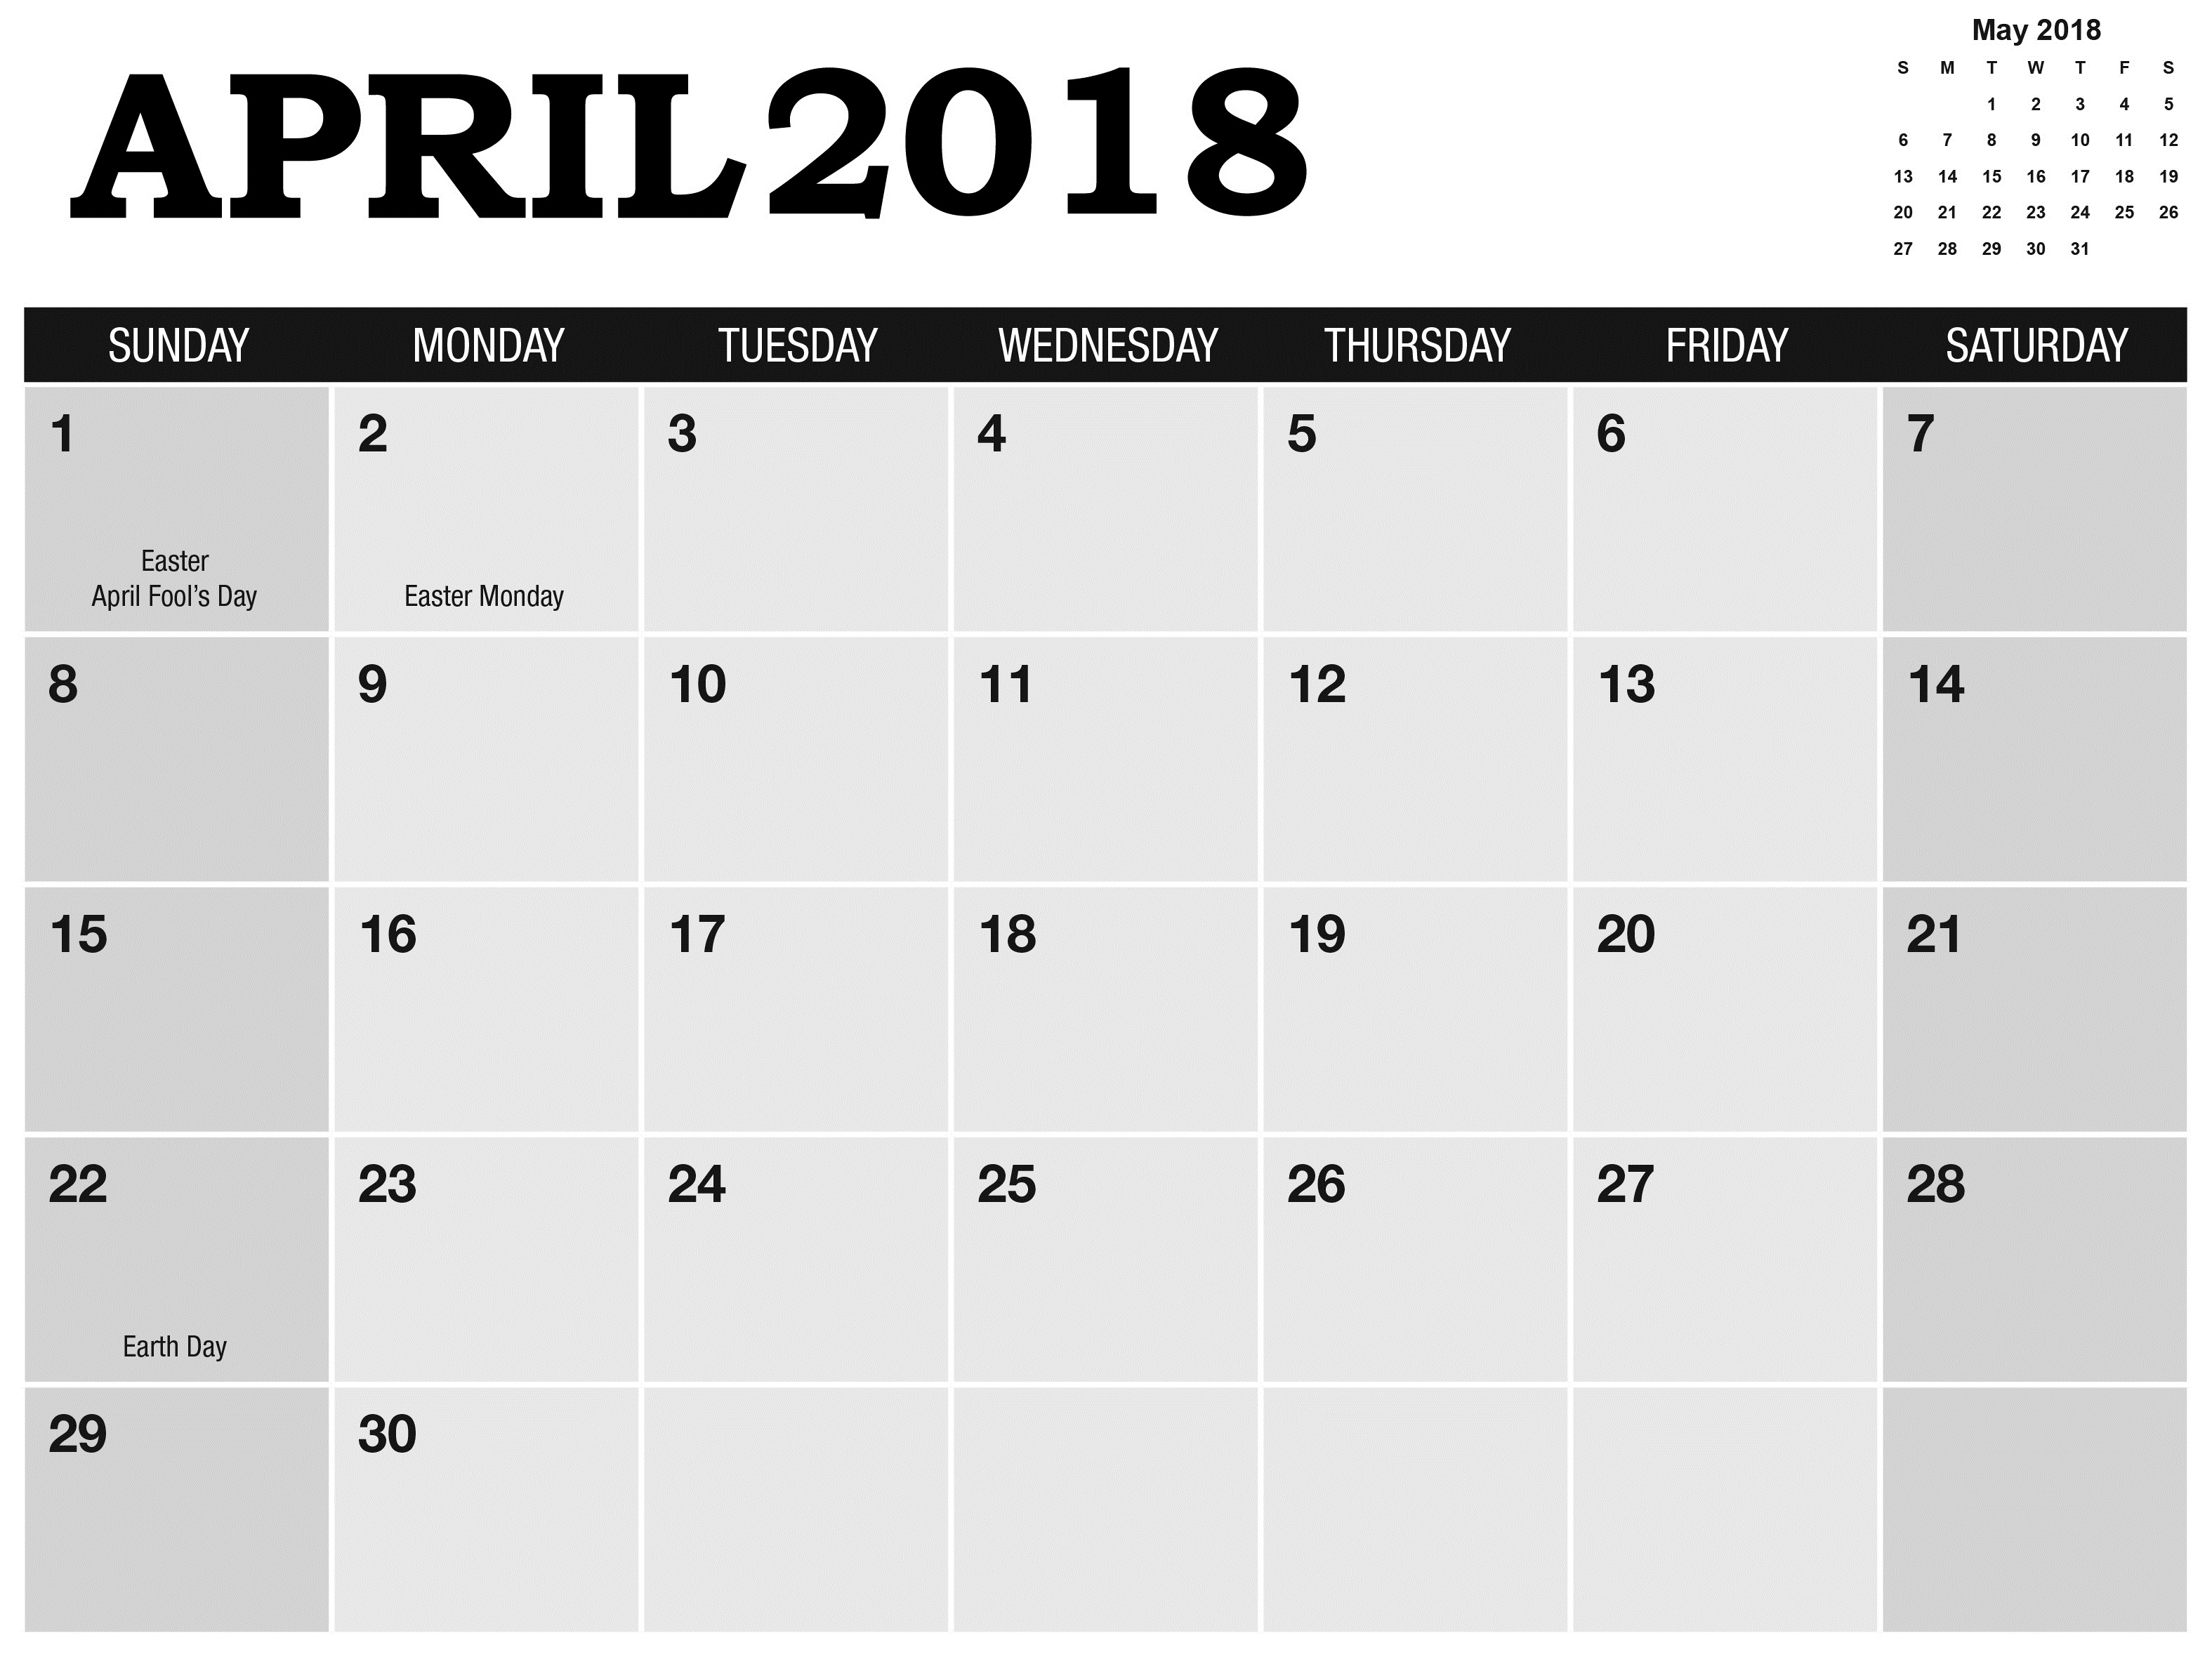 April May 2018 Calendar With Holidays